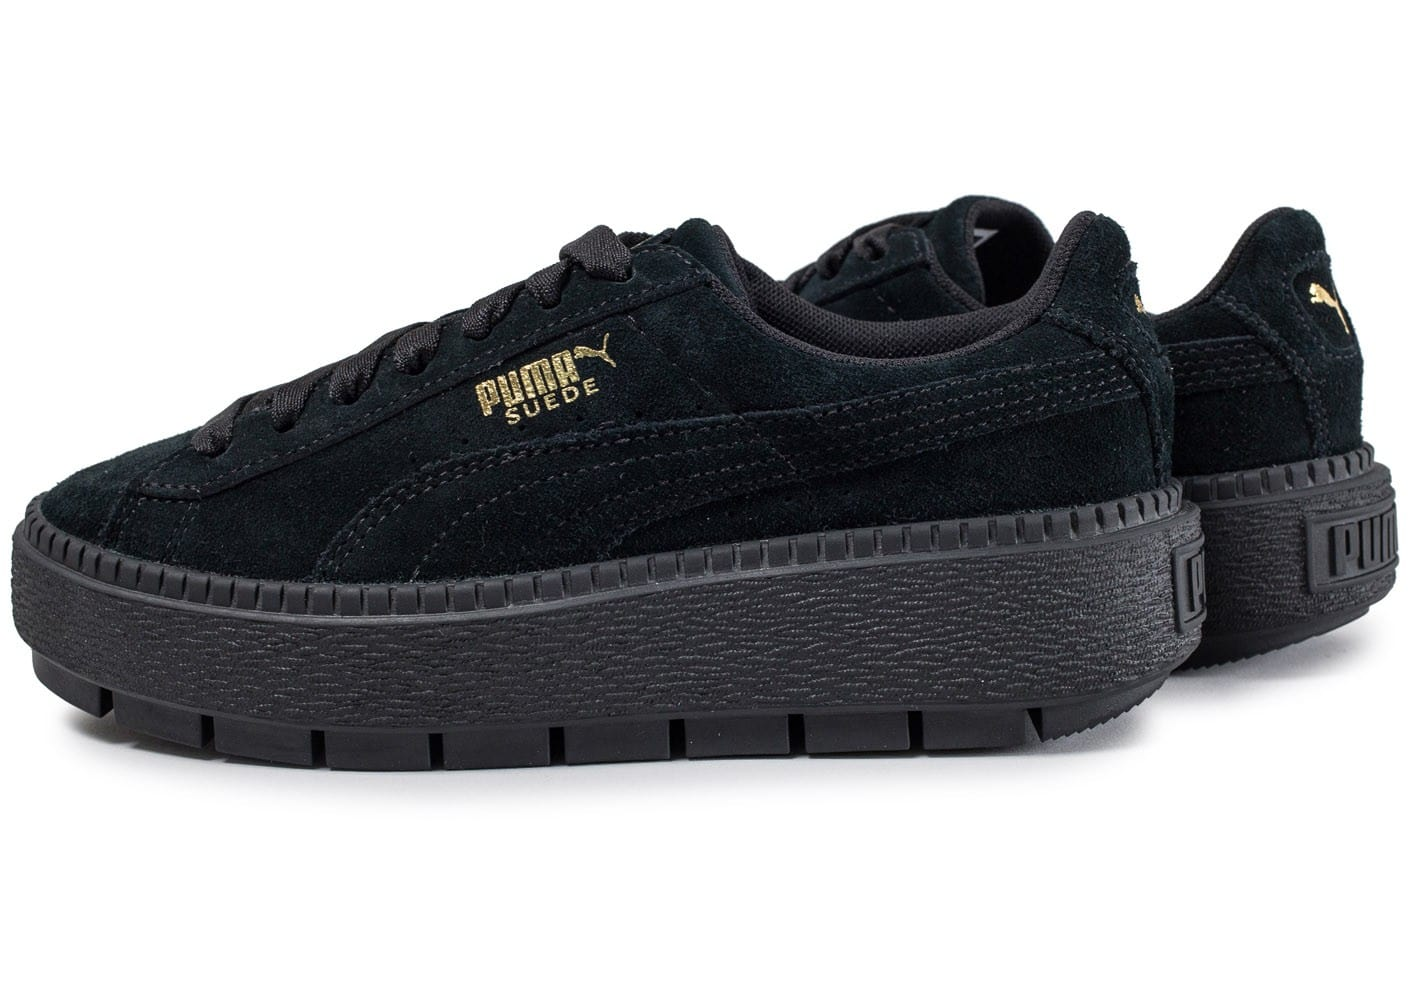 puma suede platform trace noire chaussures baskets femme chausport. Black Bedroom Furniture Sets. Home Design Ideas